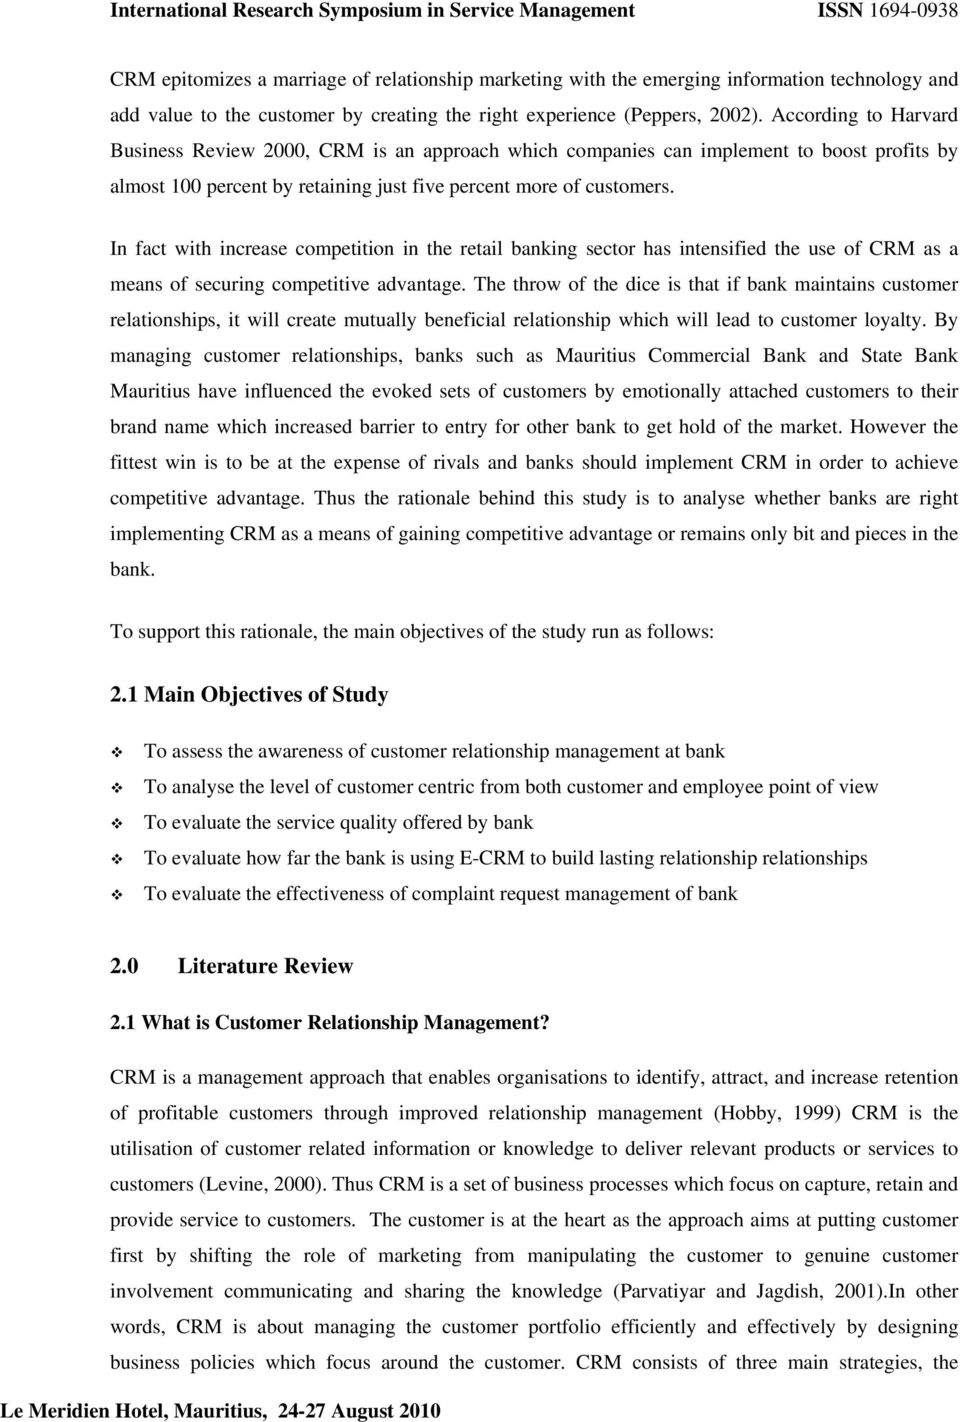 write essay about transport introduction analysis